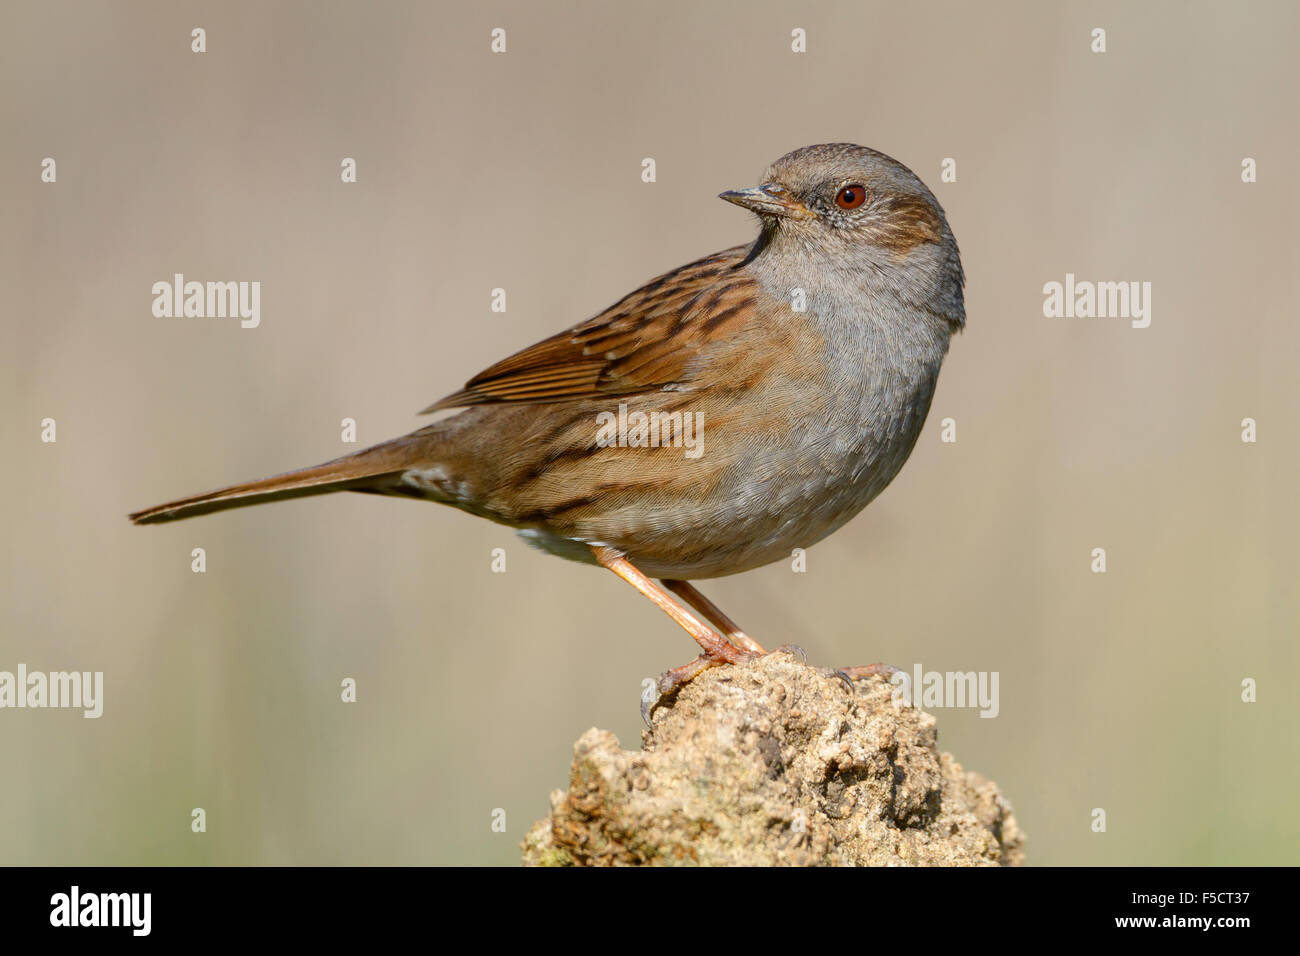 Dunnock, Adult perched on a stone, Campania, Italy (Prunella modularis) Stock Photo